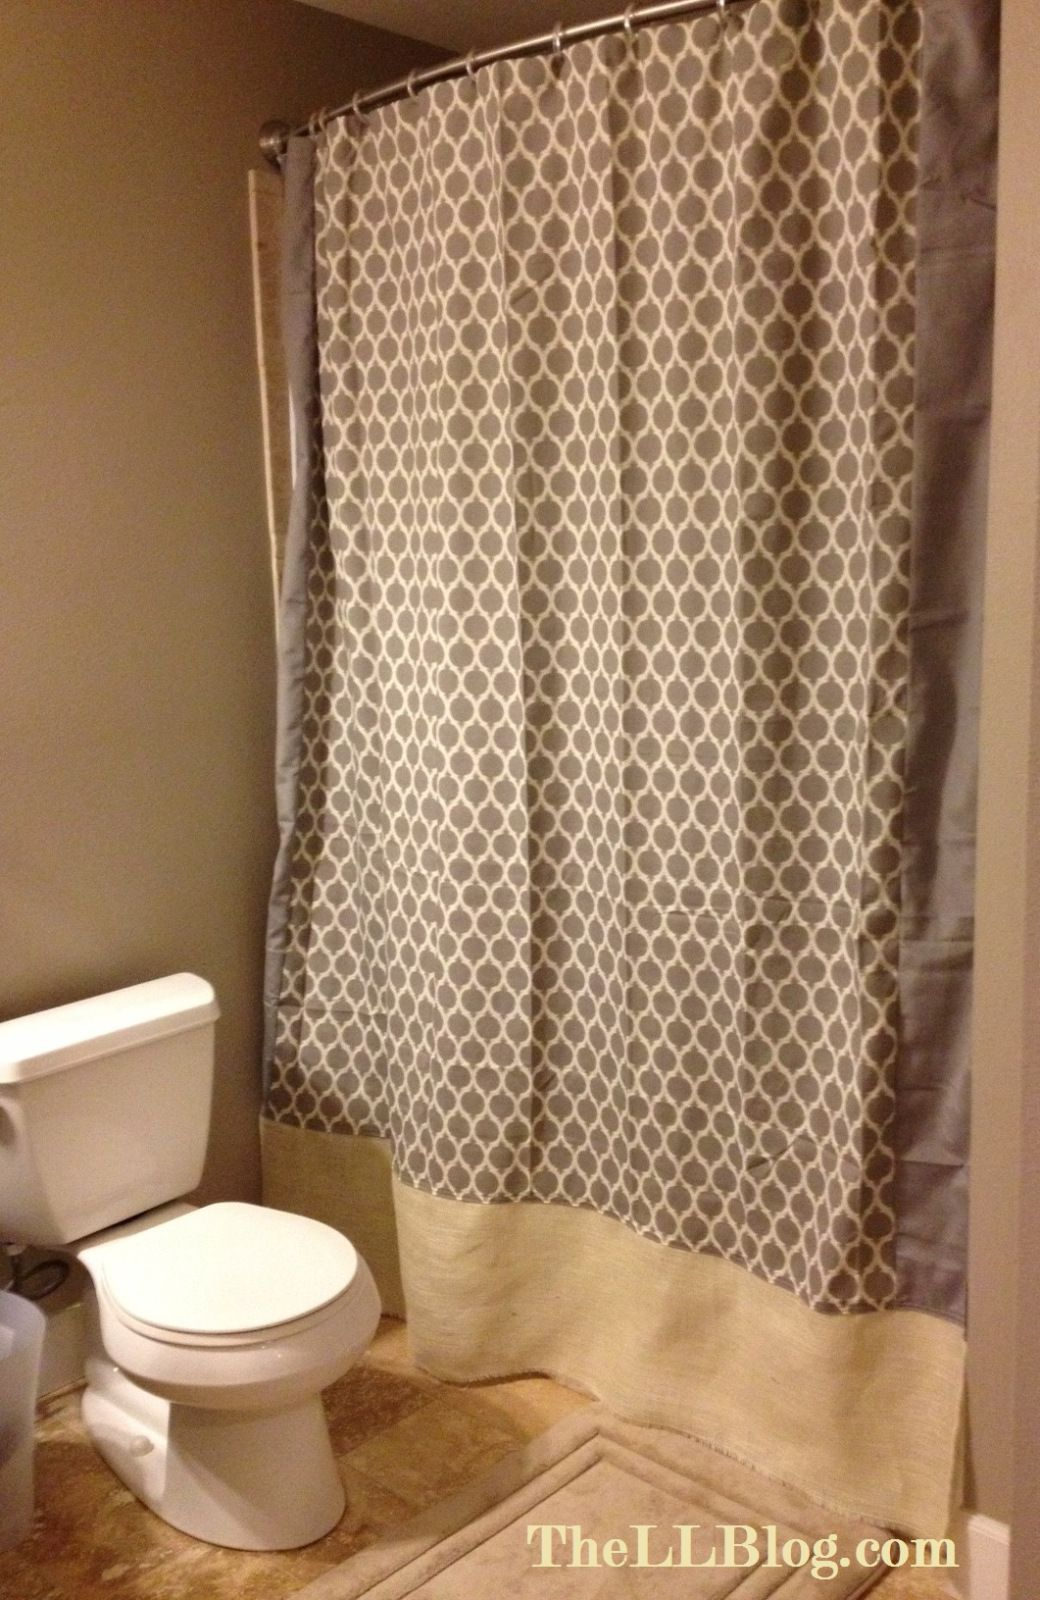 How To Make Shower Curtain Shower Curtain Love Diy Tutorial To Making A Shower Curtain